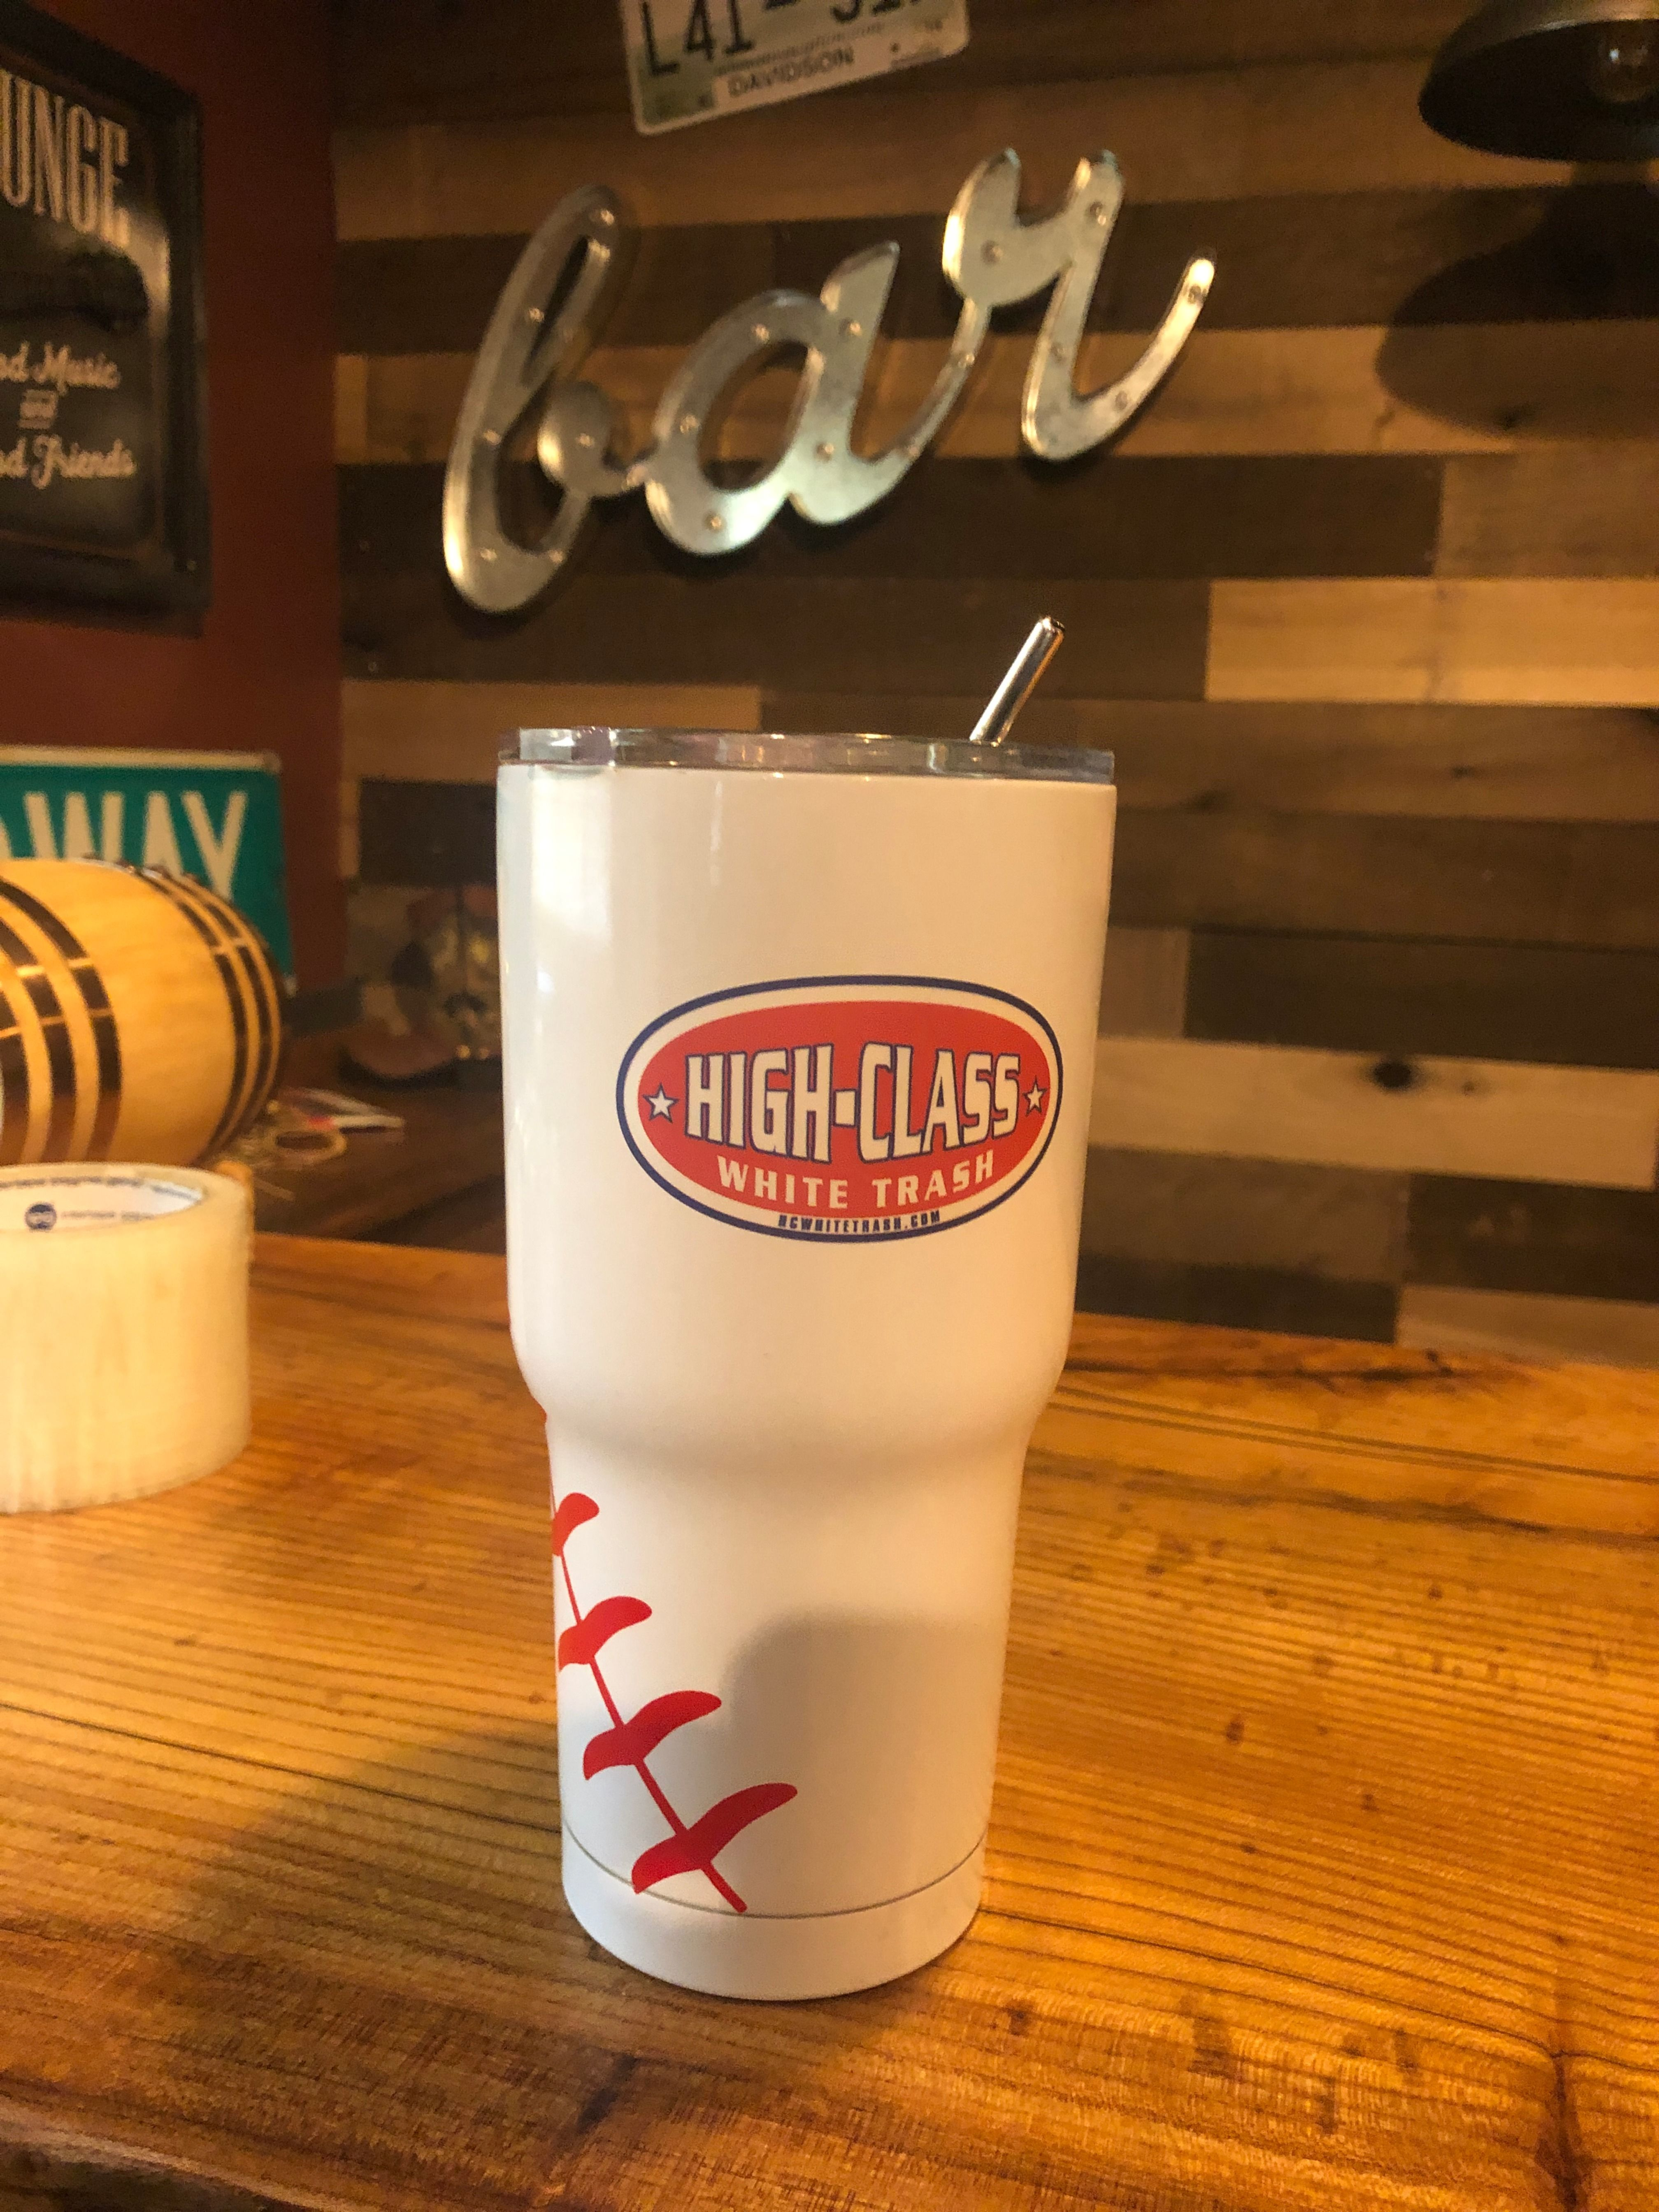 High Class White Trash Sticker Decal on Baseball Tumbler. Just another fun way to use your High Class White Trash sticker decals. This sticker decal is applied to a baseball tumbler. #highclasswhitetrash #redneck #rednecks #rebels #camping #fishing #decal #decals